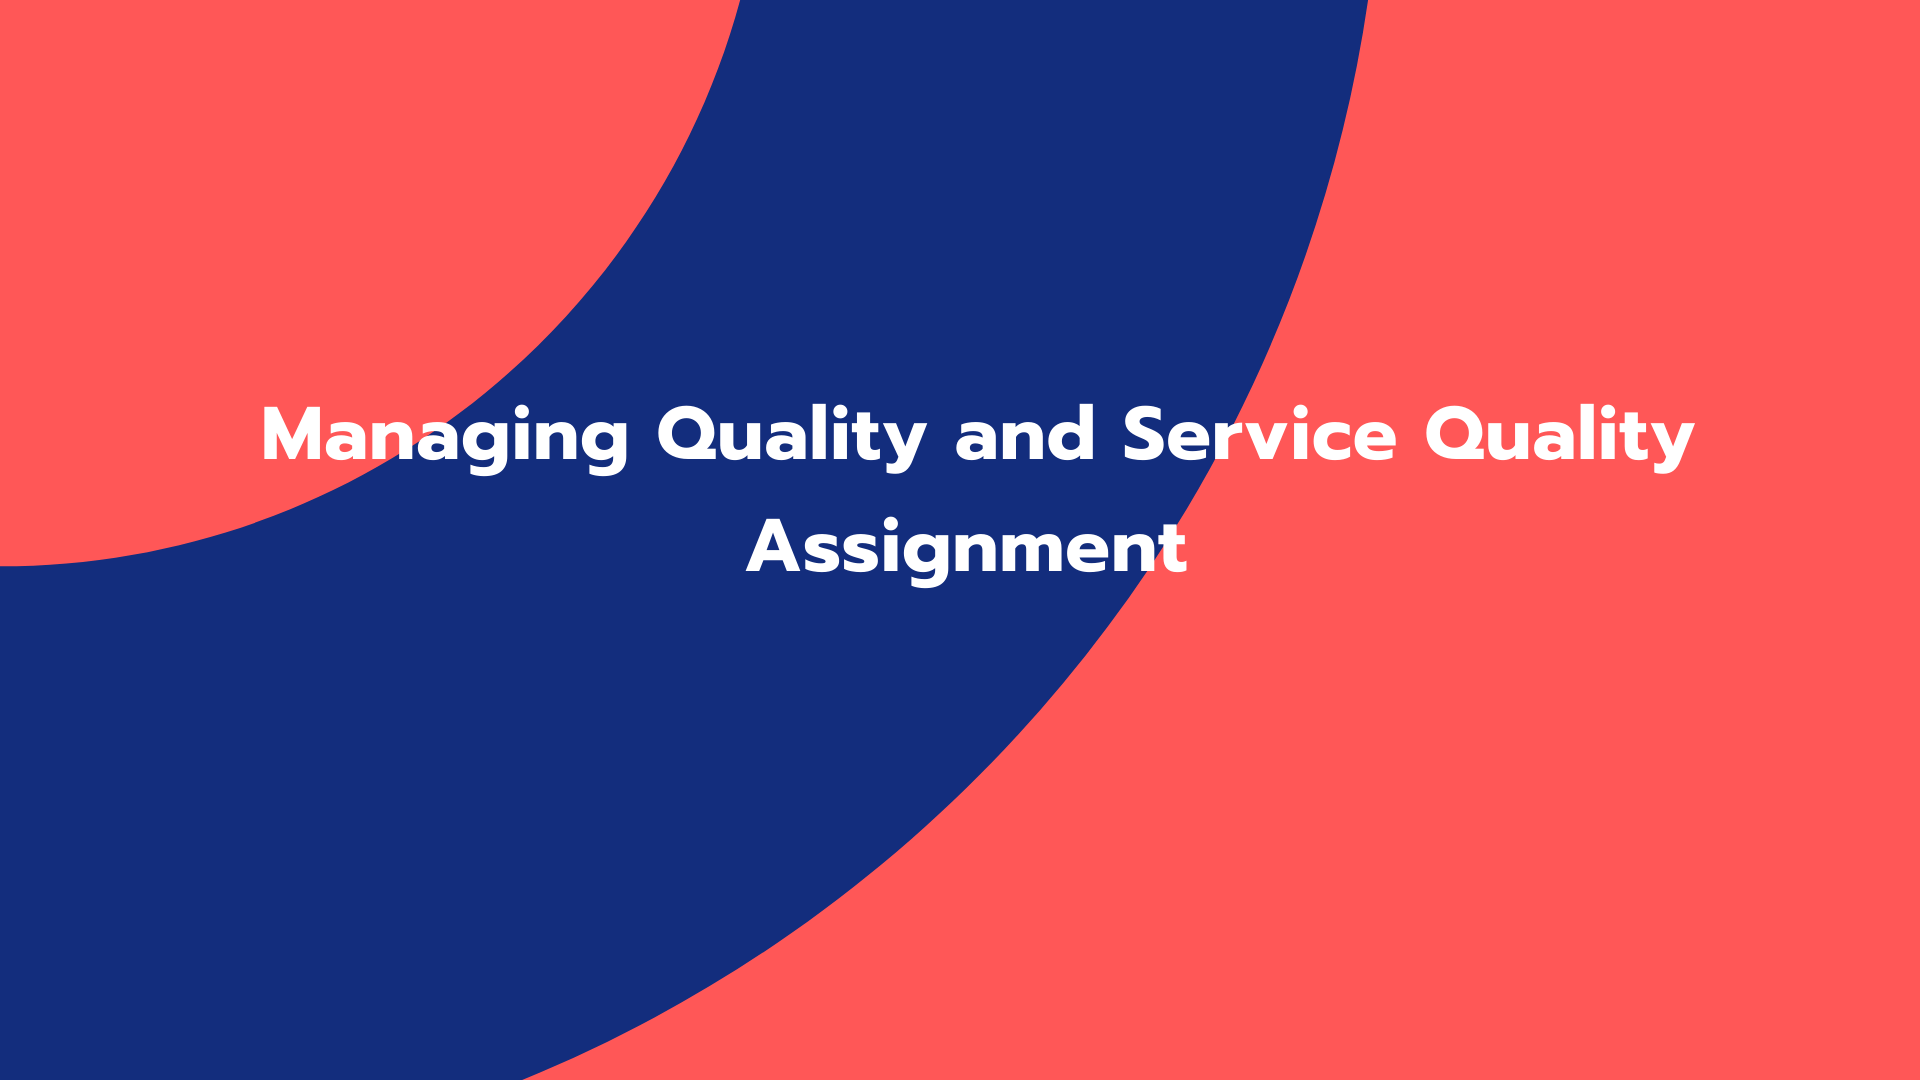 Managing quality and service quality assignment